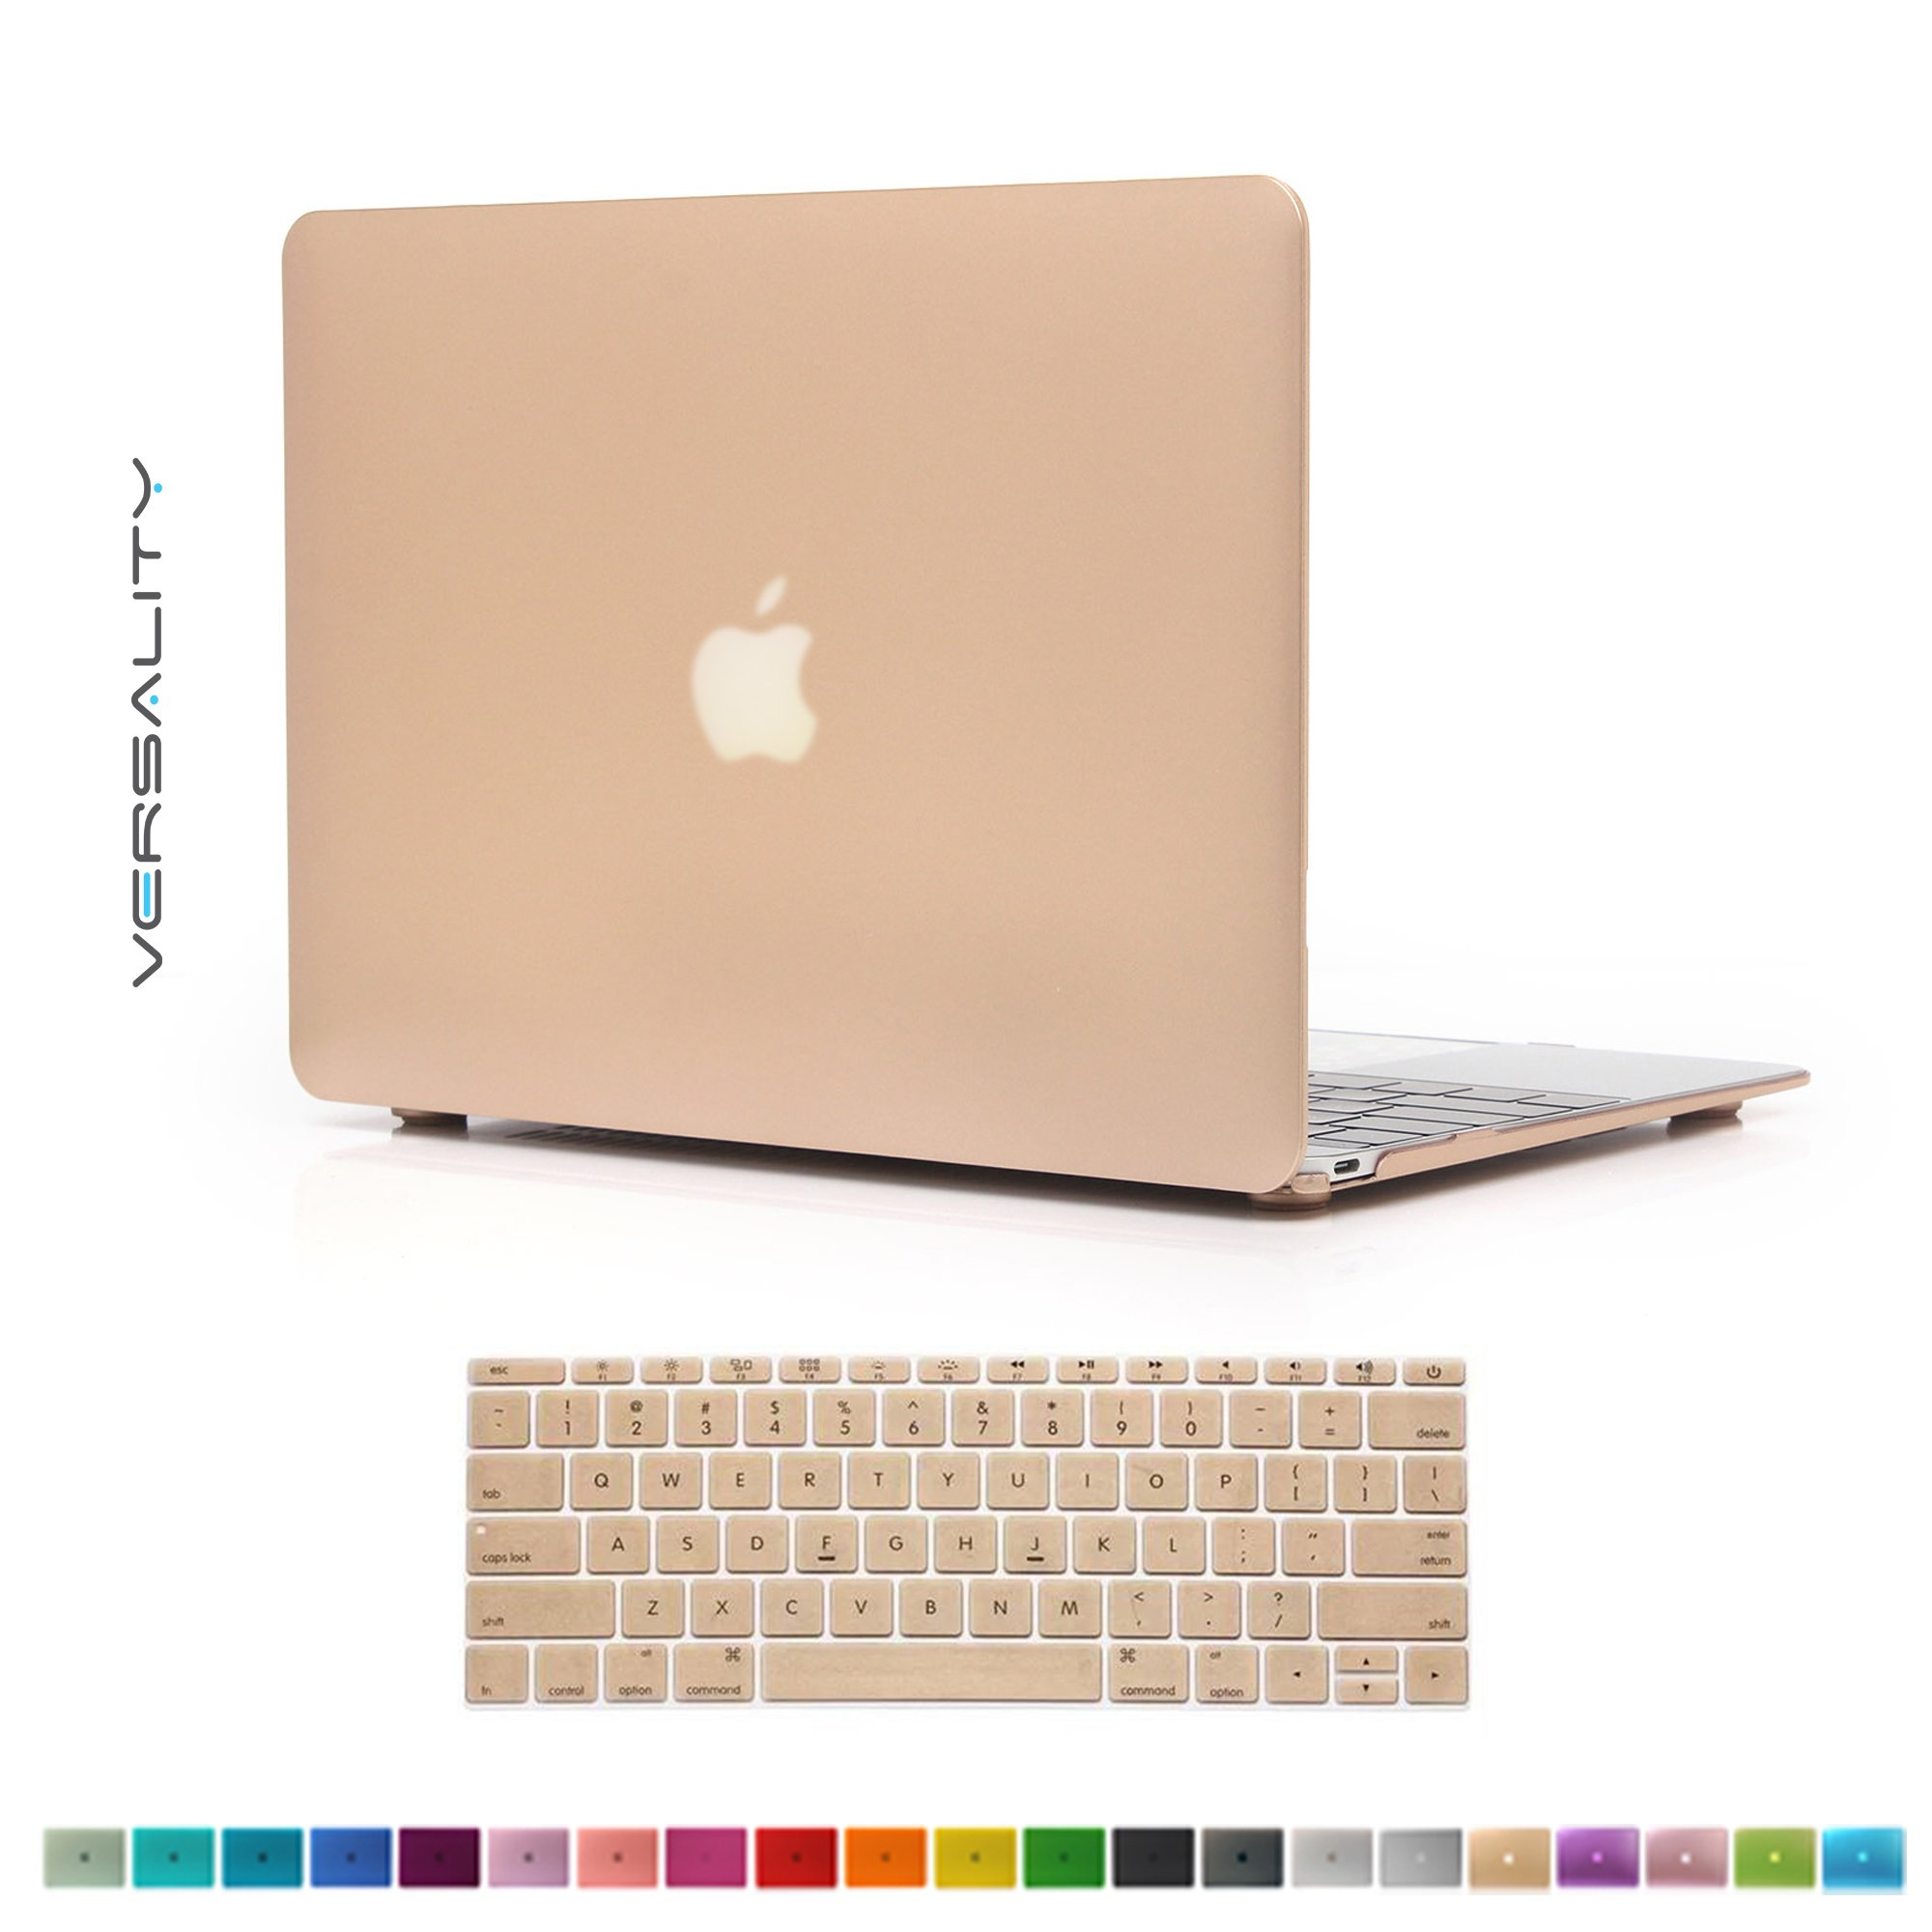 Versality Perfect Fit Hard Case Cover for The NEW MacBook 12'' (Model: A1534 ) and Matching Keyboard Cover in Champagne Gold Metallic